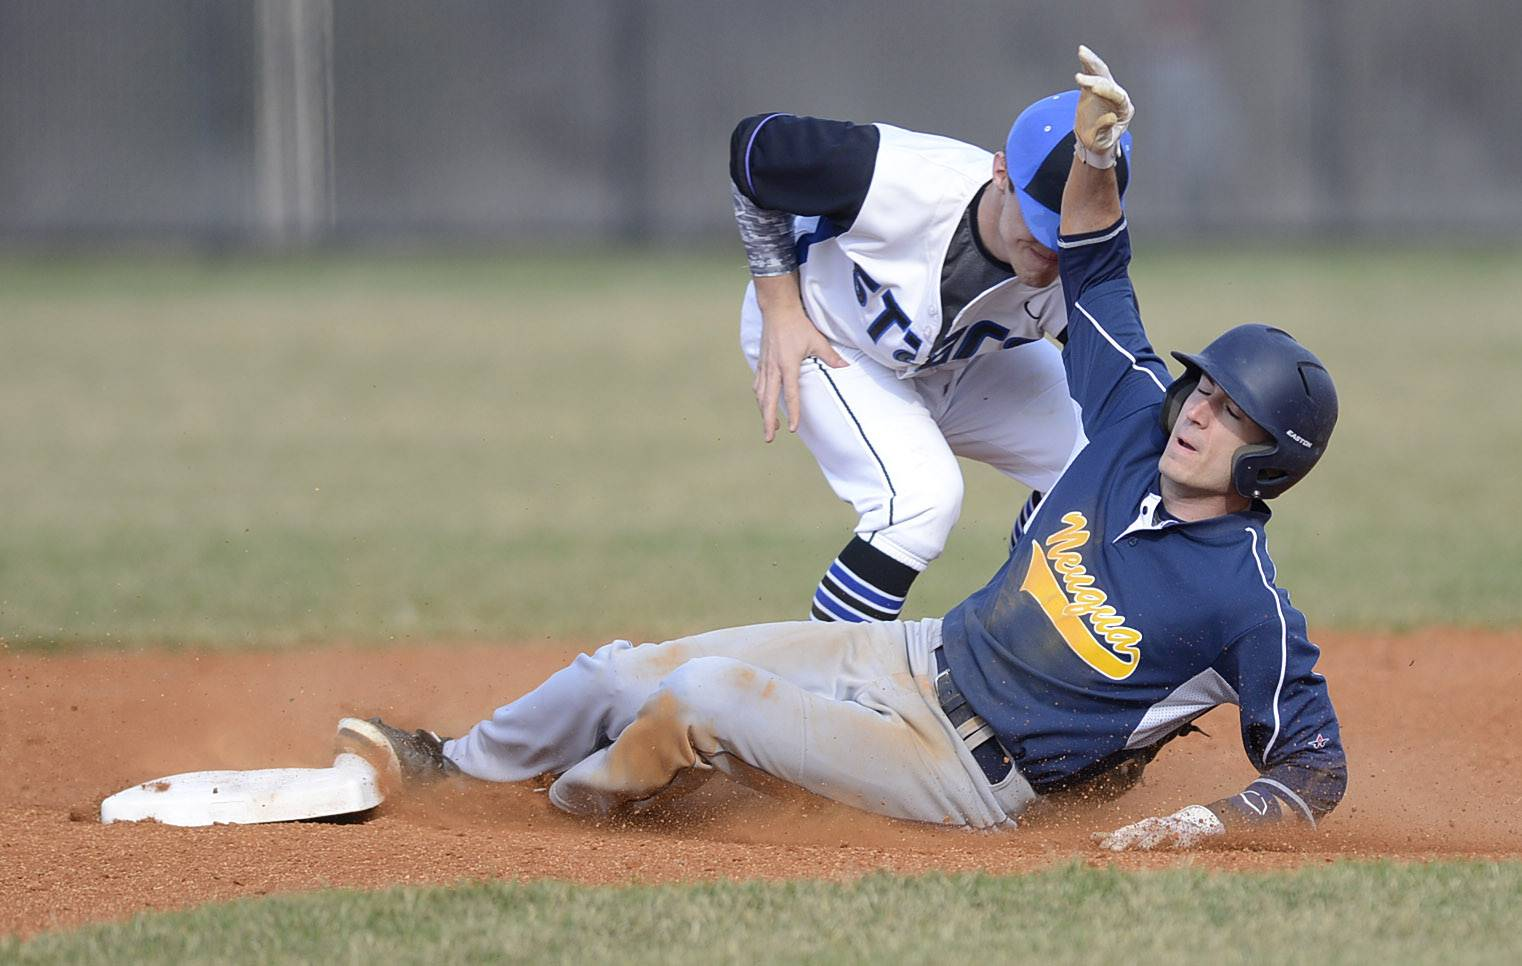 St. Charles North's Zach Mettetal tags out Neuqua Valley's Josh Piotrowski at second base in the first inning on Friday, April 11.